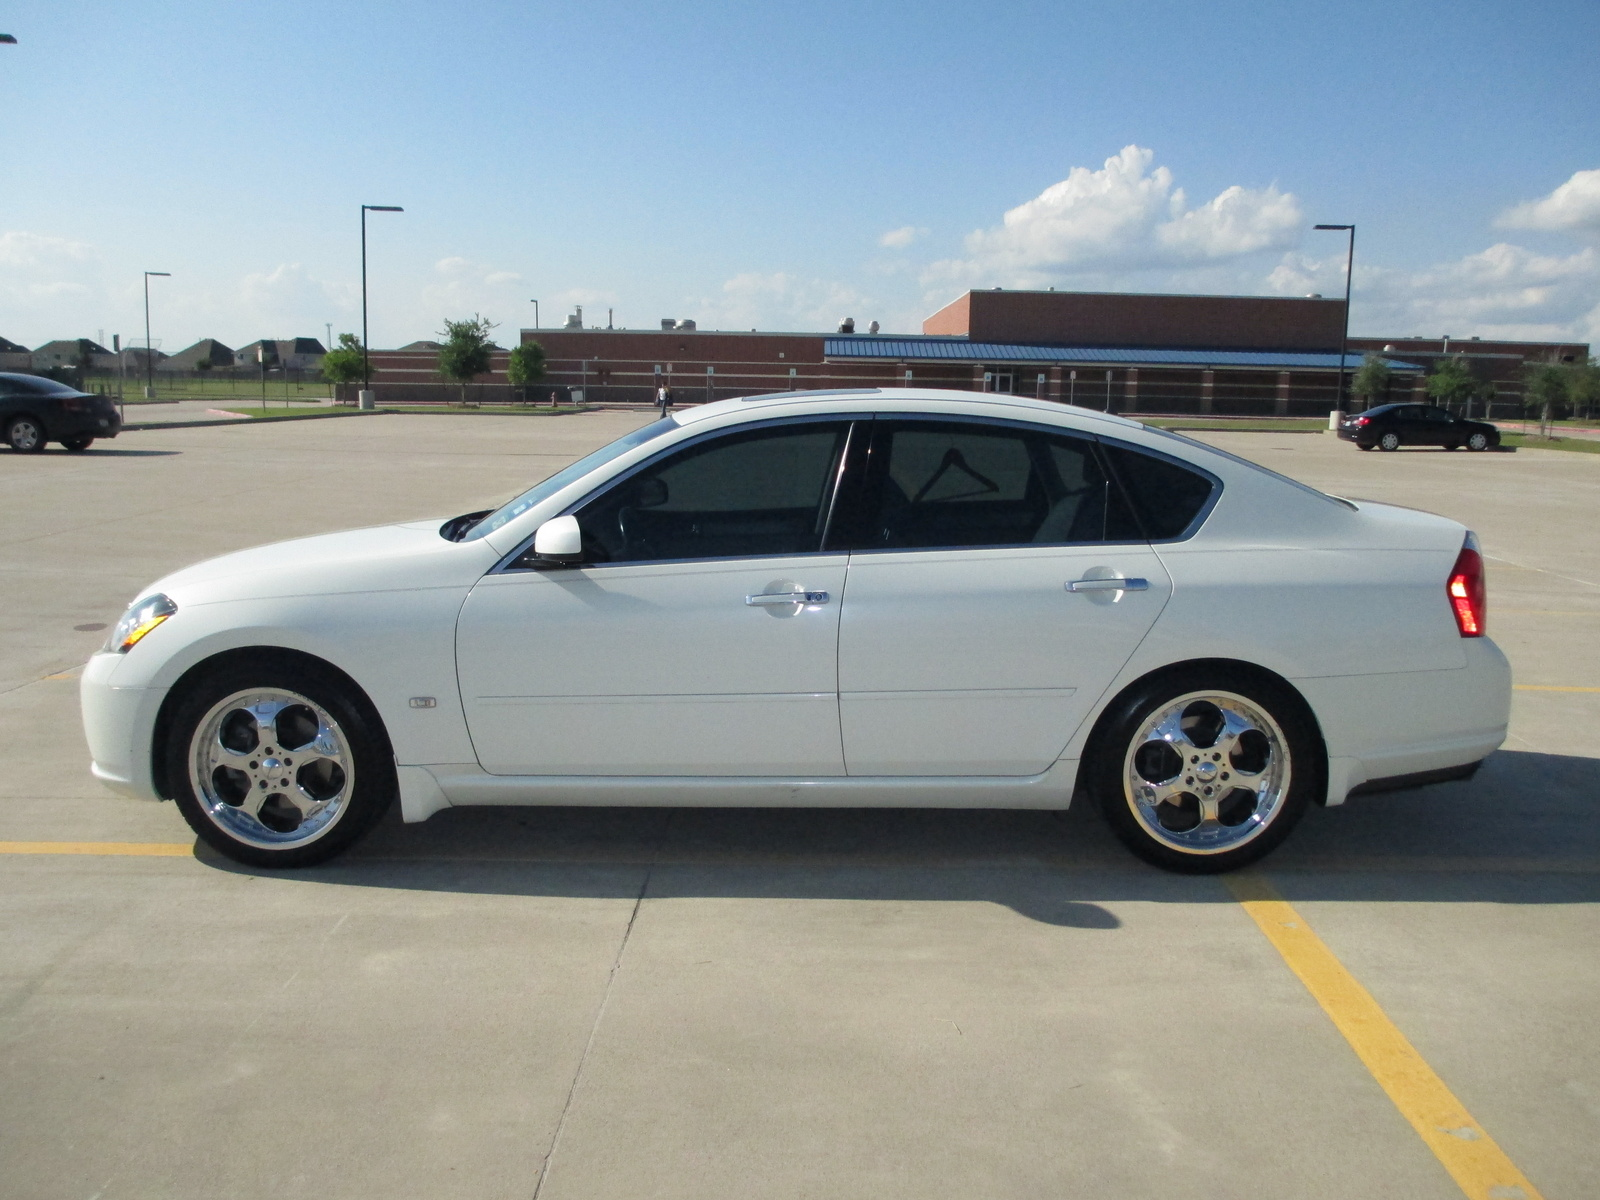 2006 Infiniti M35 Pictures C2239 pi36226895 moreover 7238 together with Watch additionally Rent A Wheel 208 Altima On 22inch 2 Crave No 9 also Watch. on 2012 nissan maxima on 22s